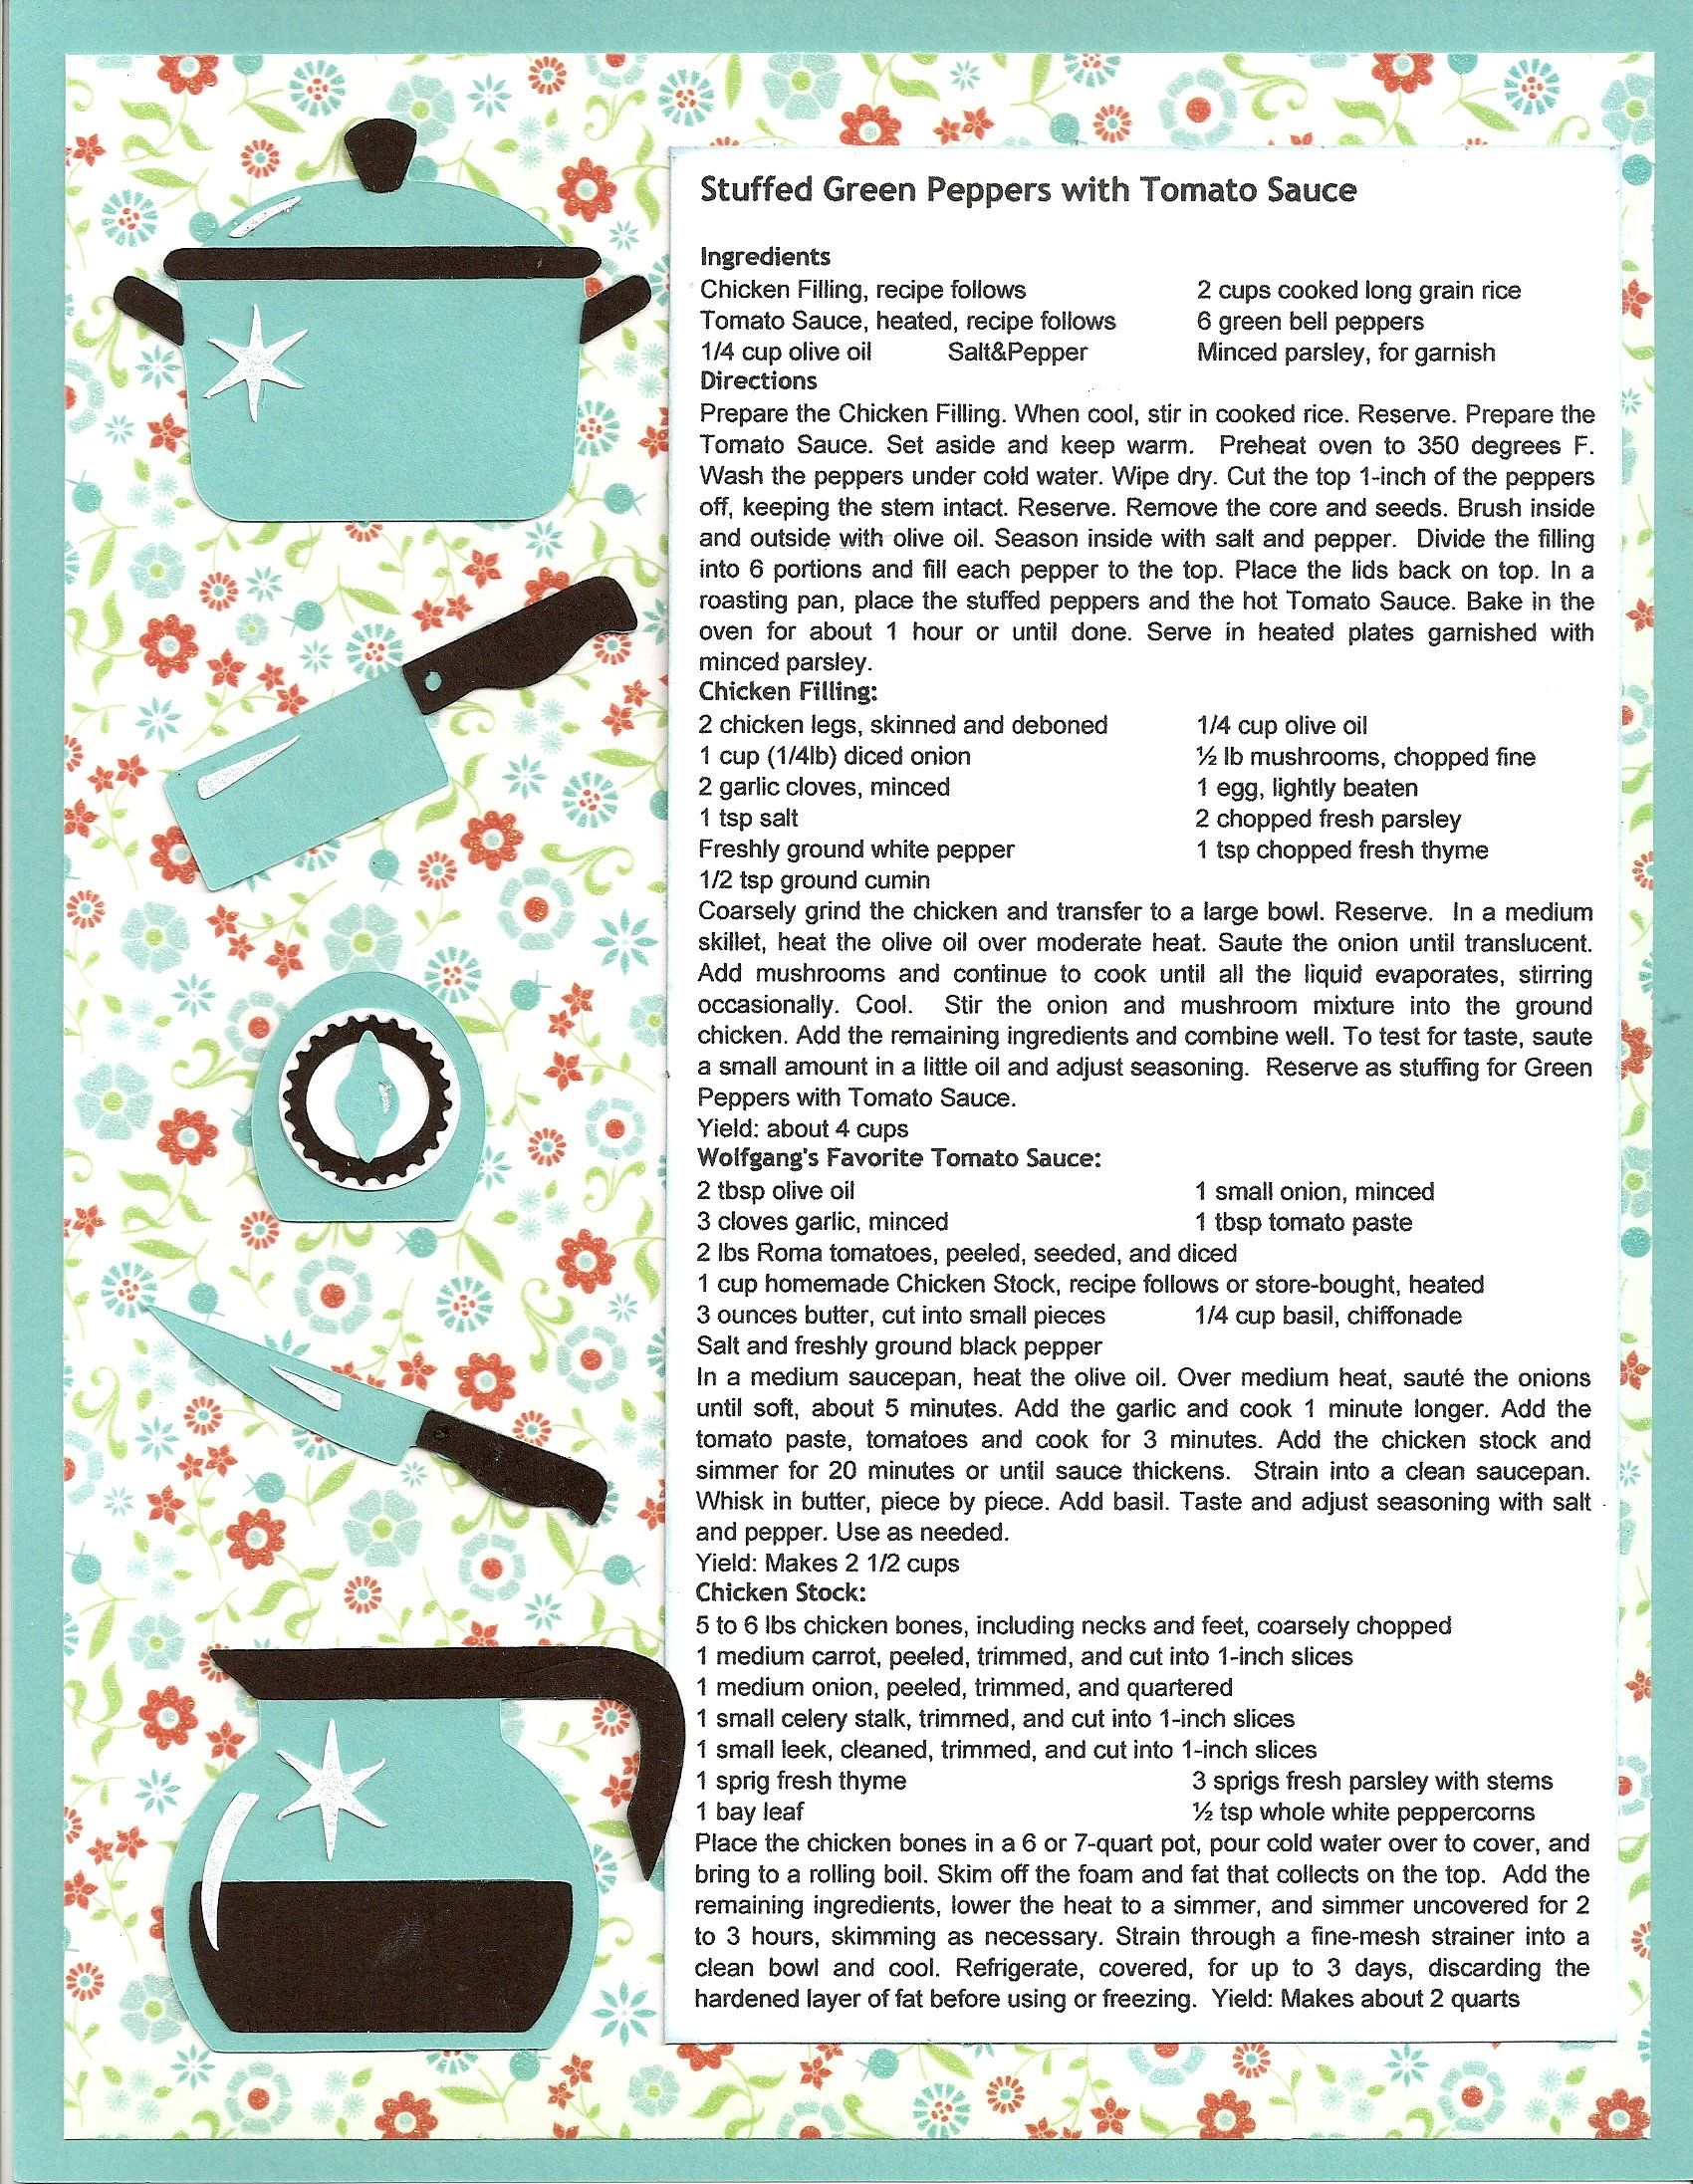 How to scrapbook recipes ideas - Stuffed Green Peppers With Tomato Sauce Recipe Scrapbooking Layou I Love The Simplicity Of This Layout